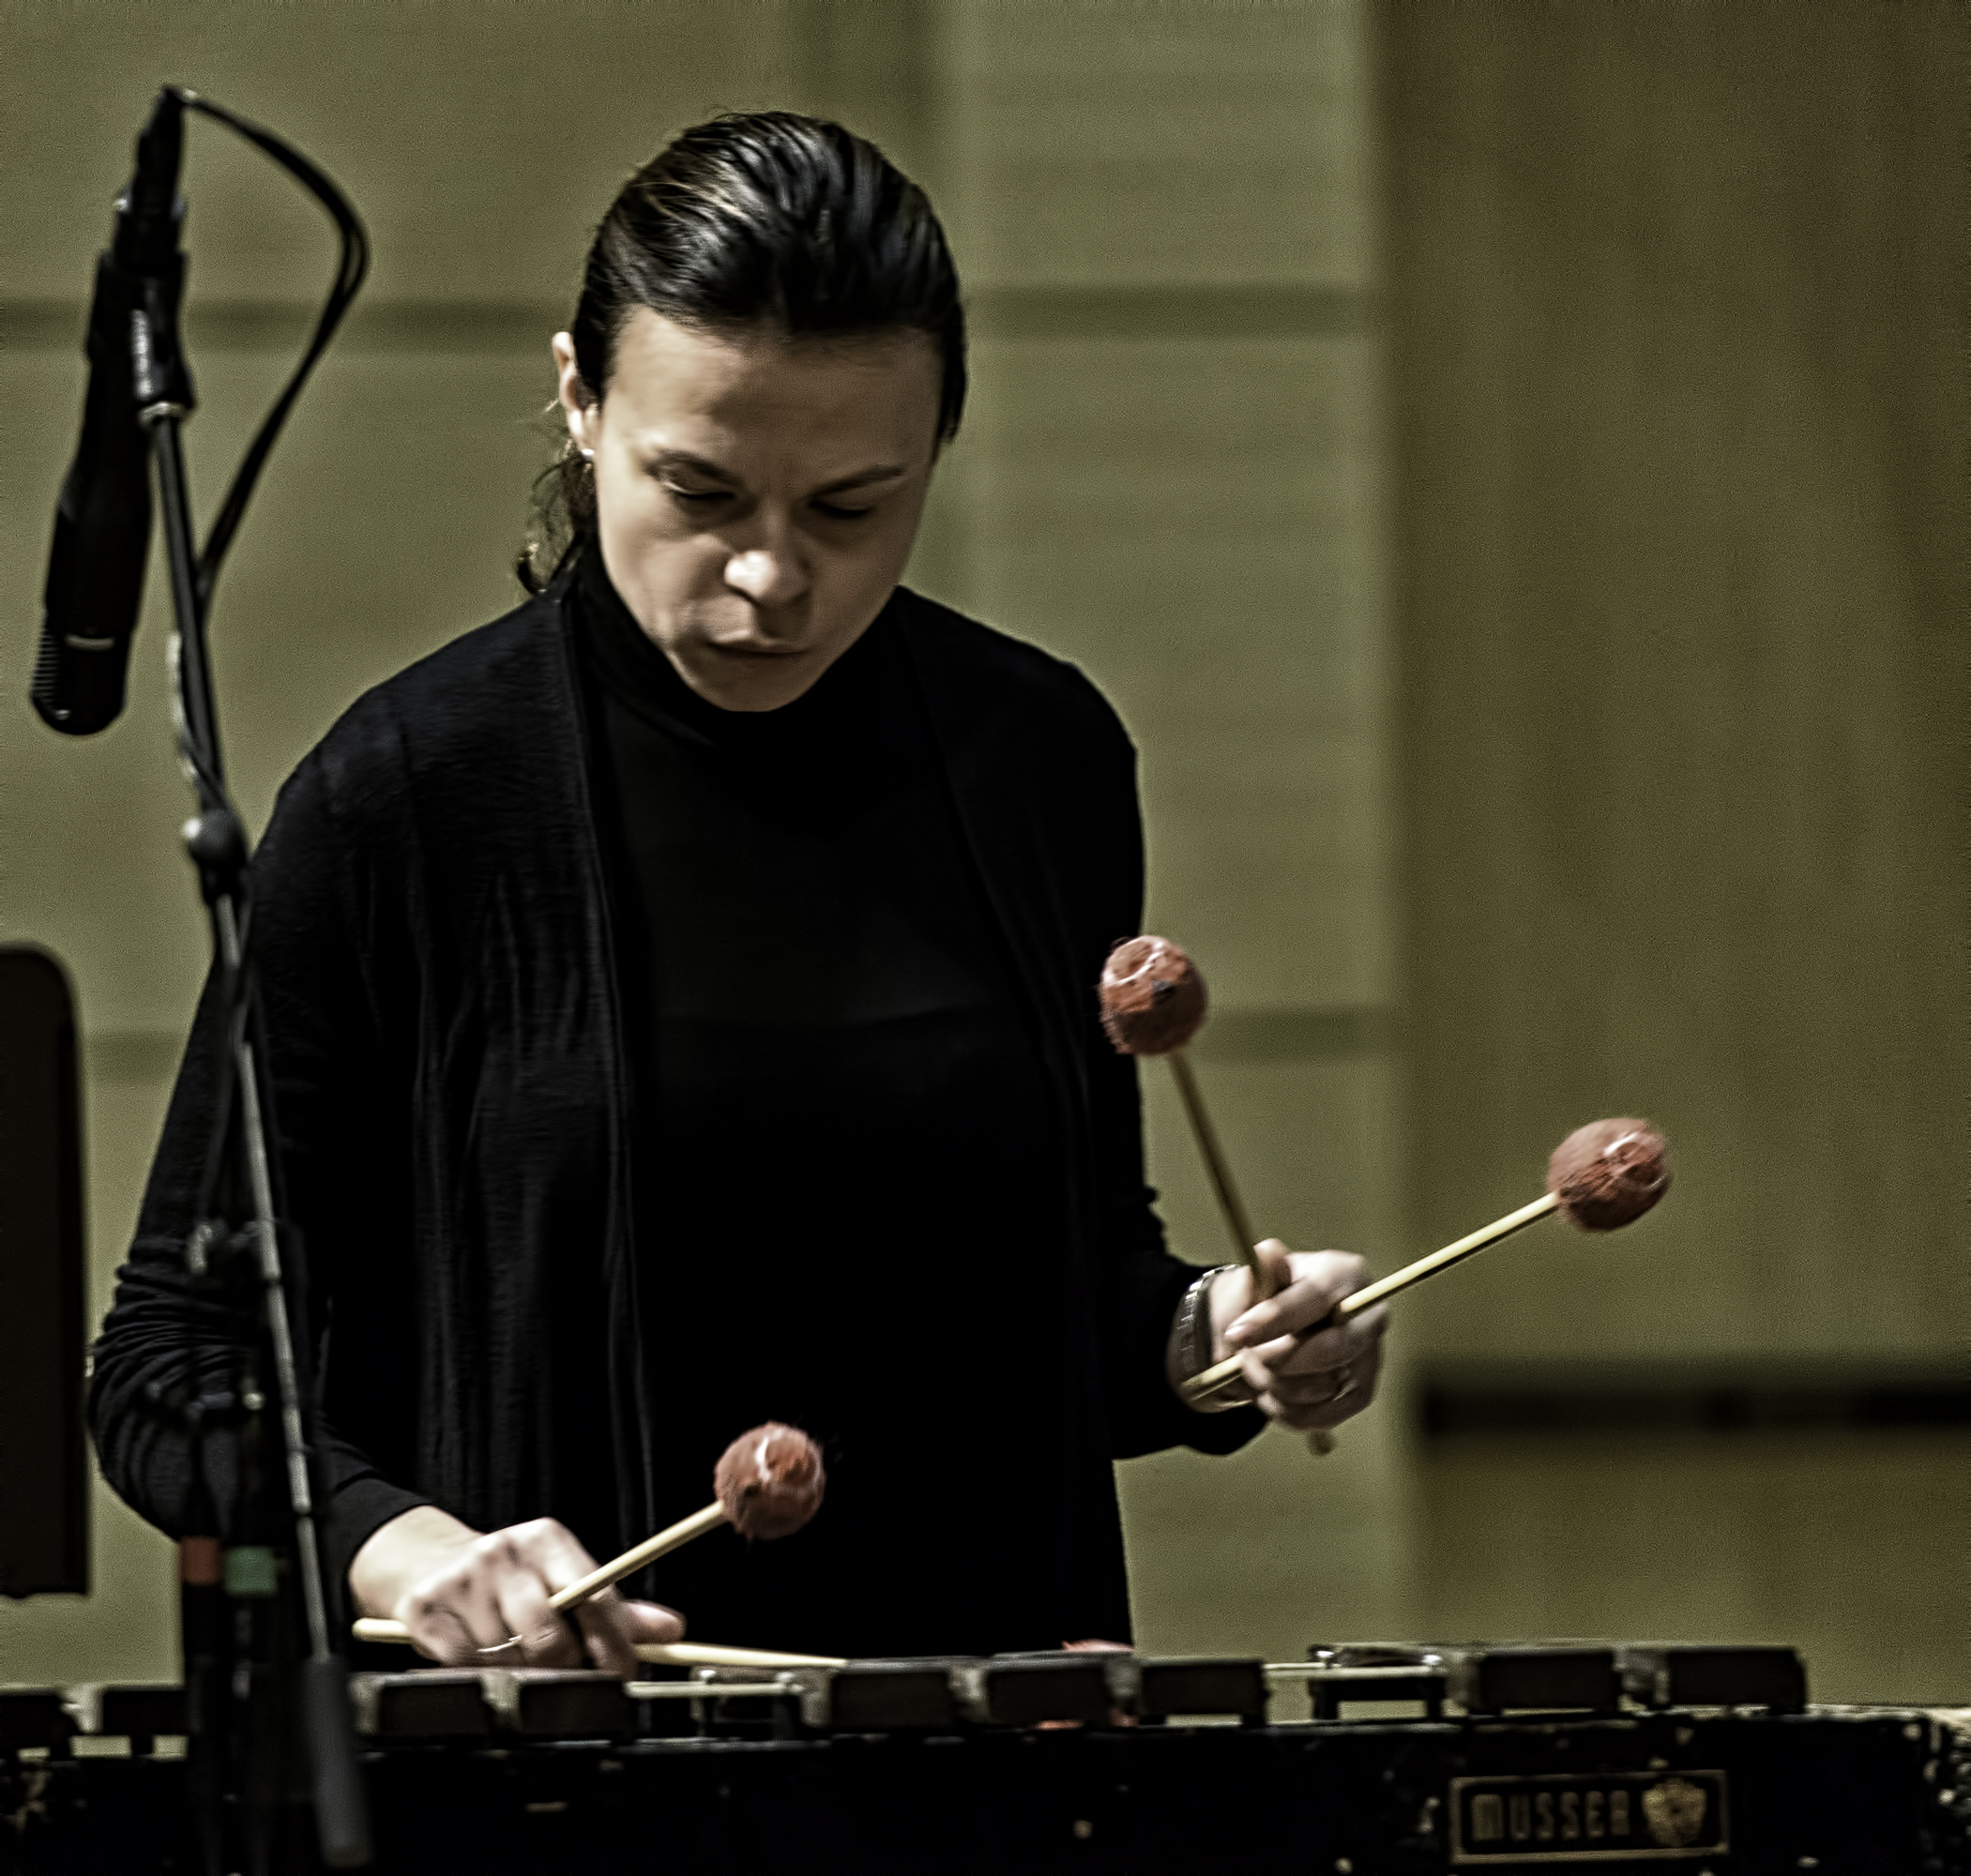 Patricia Brennan with Michael Formanek's Ensemble Kolossus At The NYC Winter Jazzfest 2016